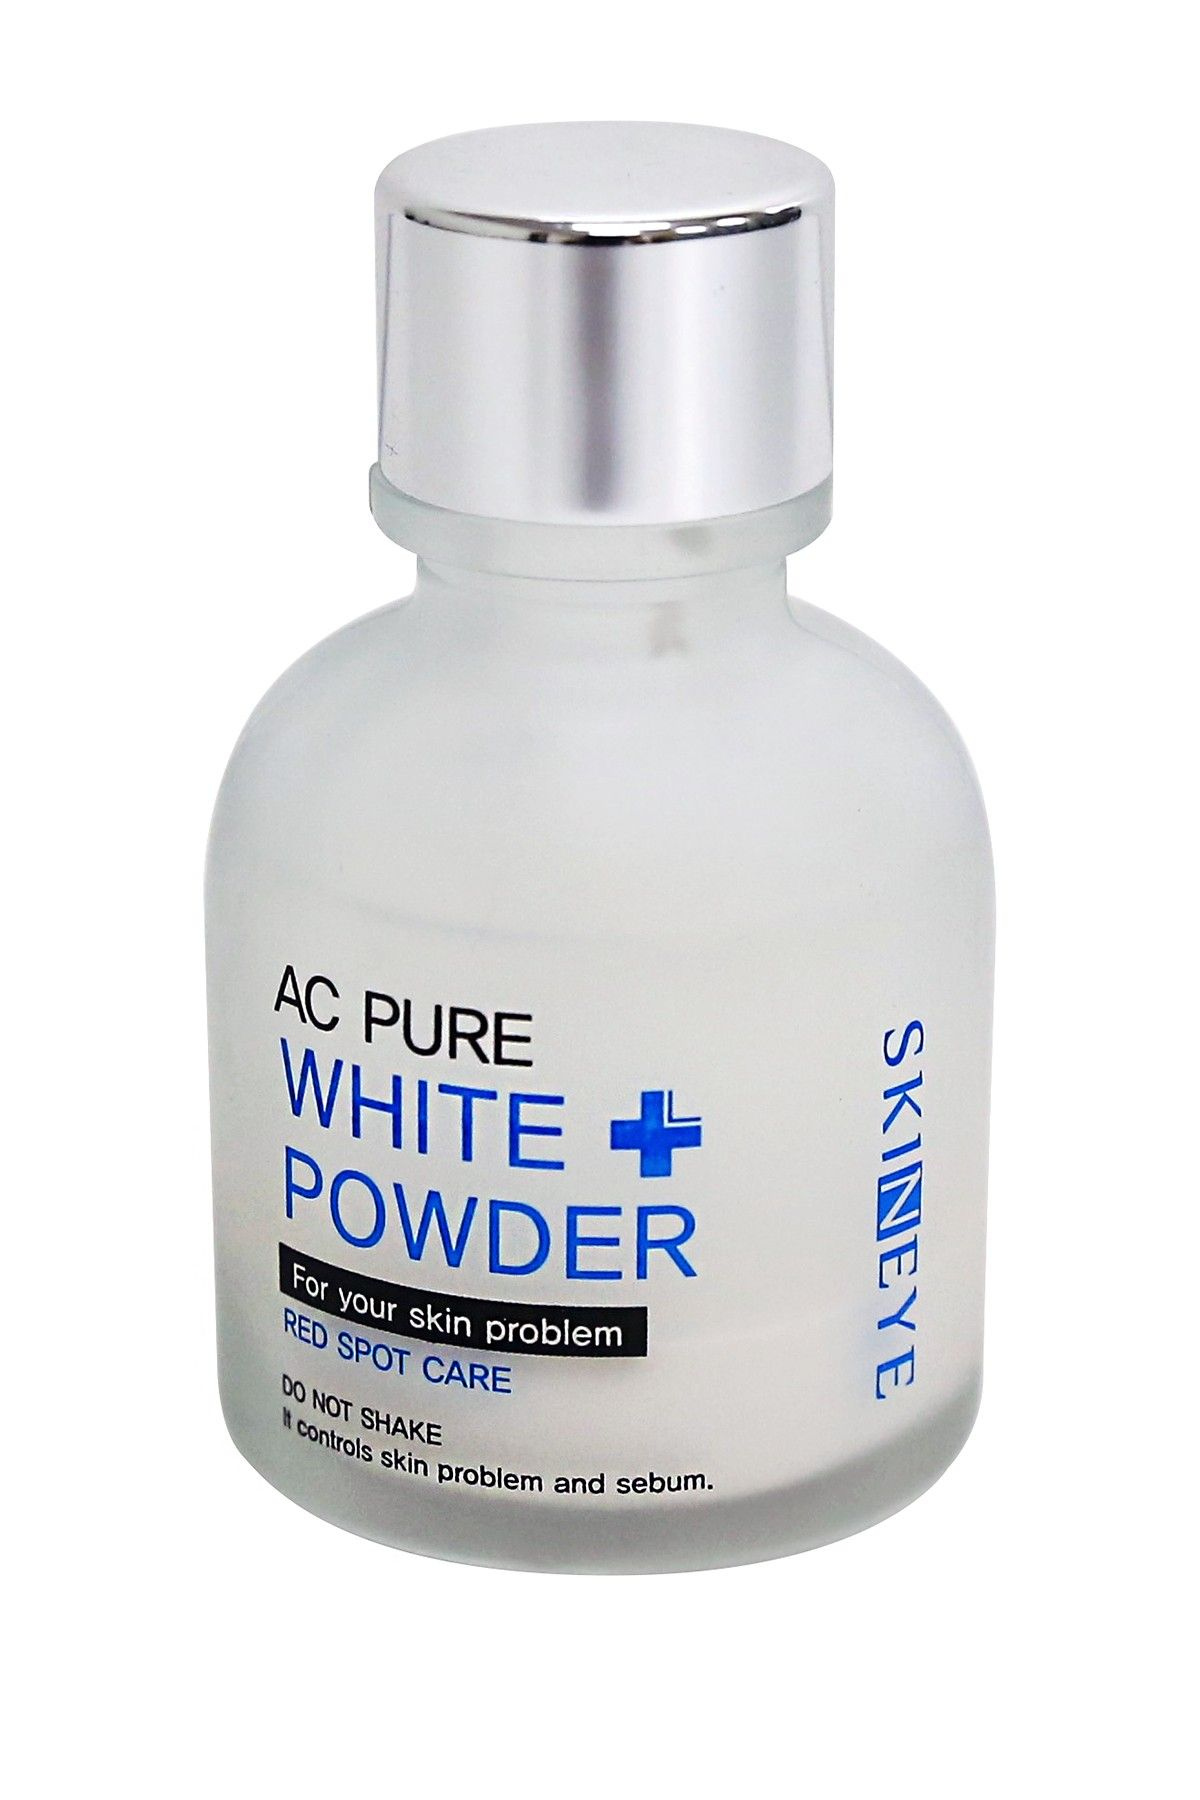 Skineye Acne Pure White Powder Red Spot Care is now 40